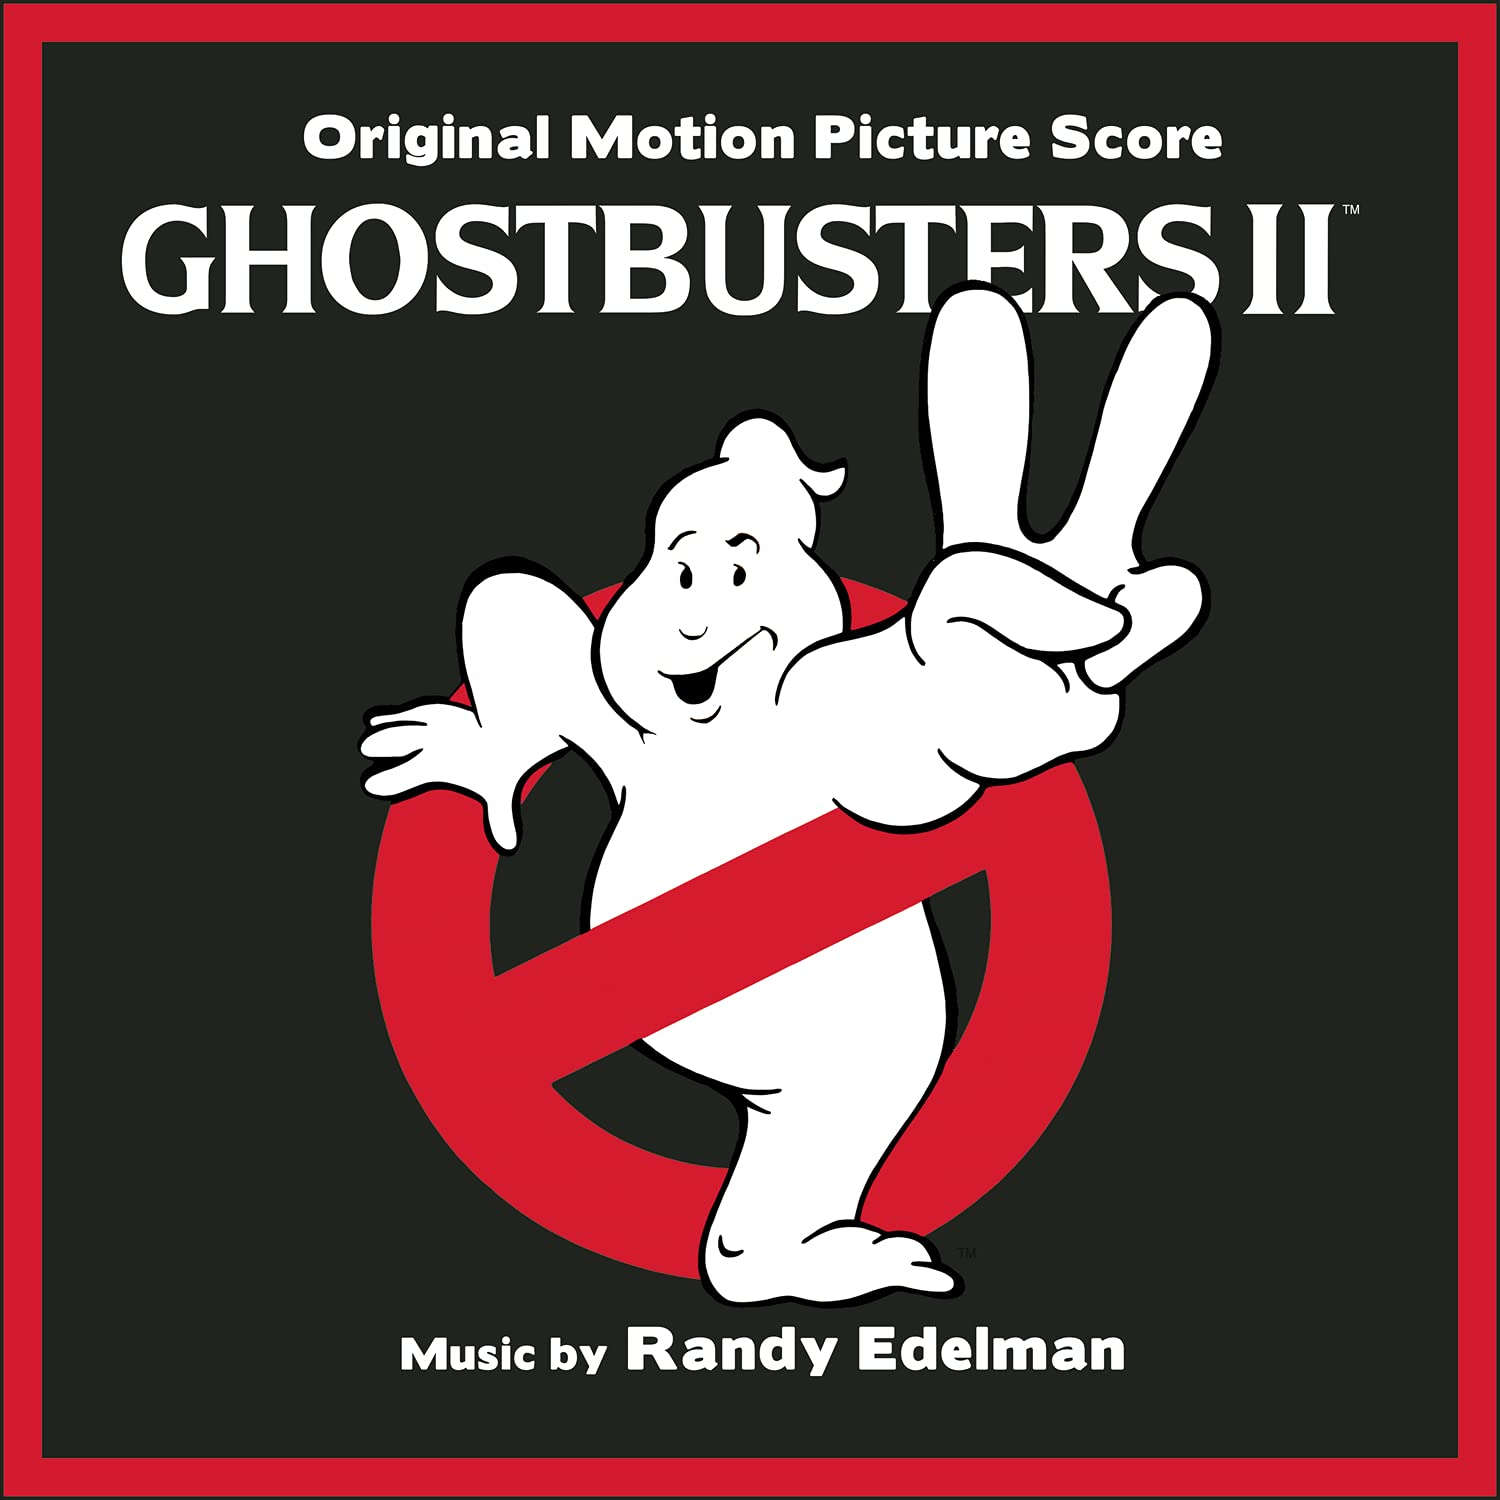 Ghostbusters Ii (Original Motion Picture